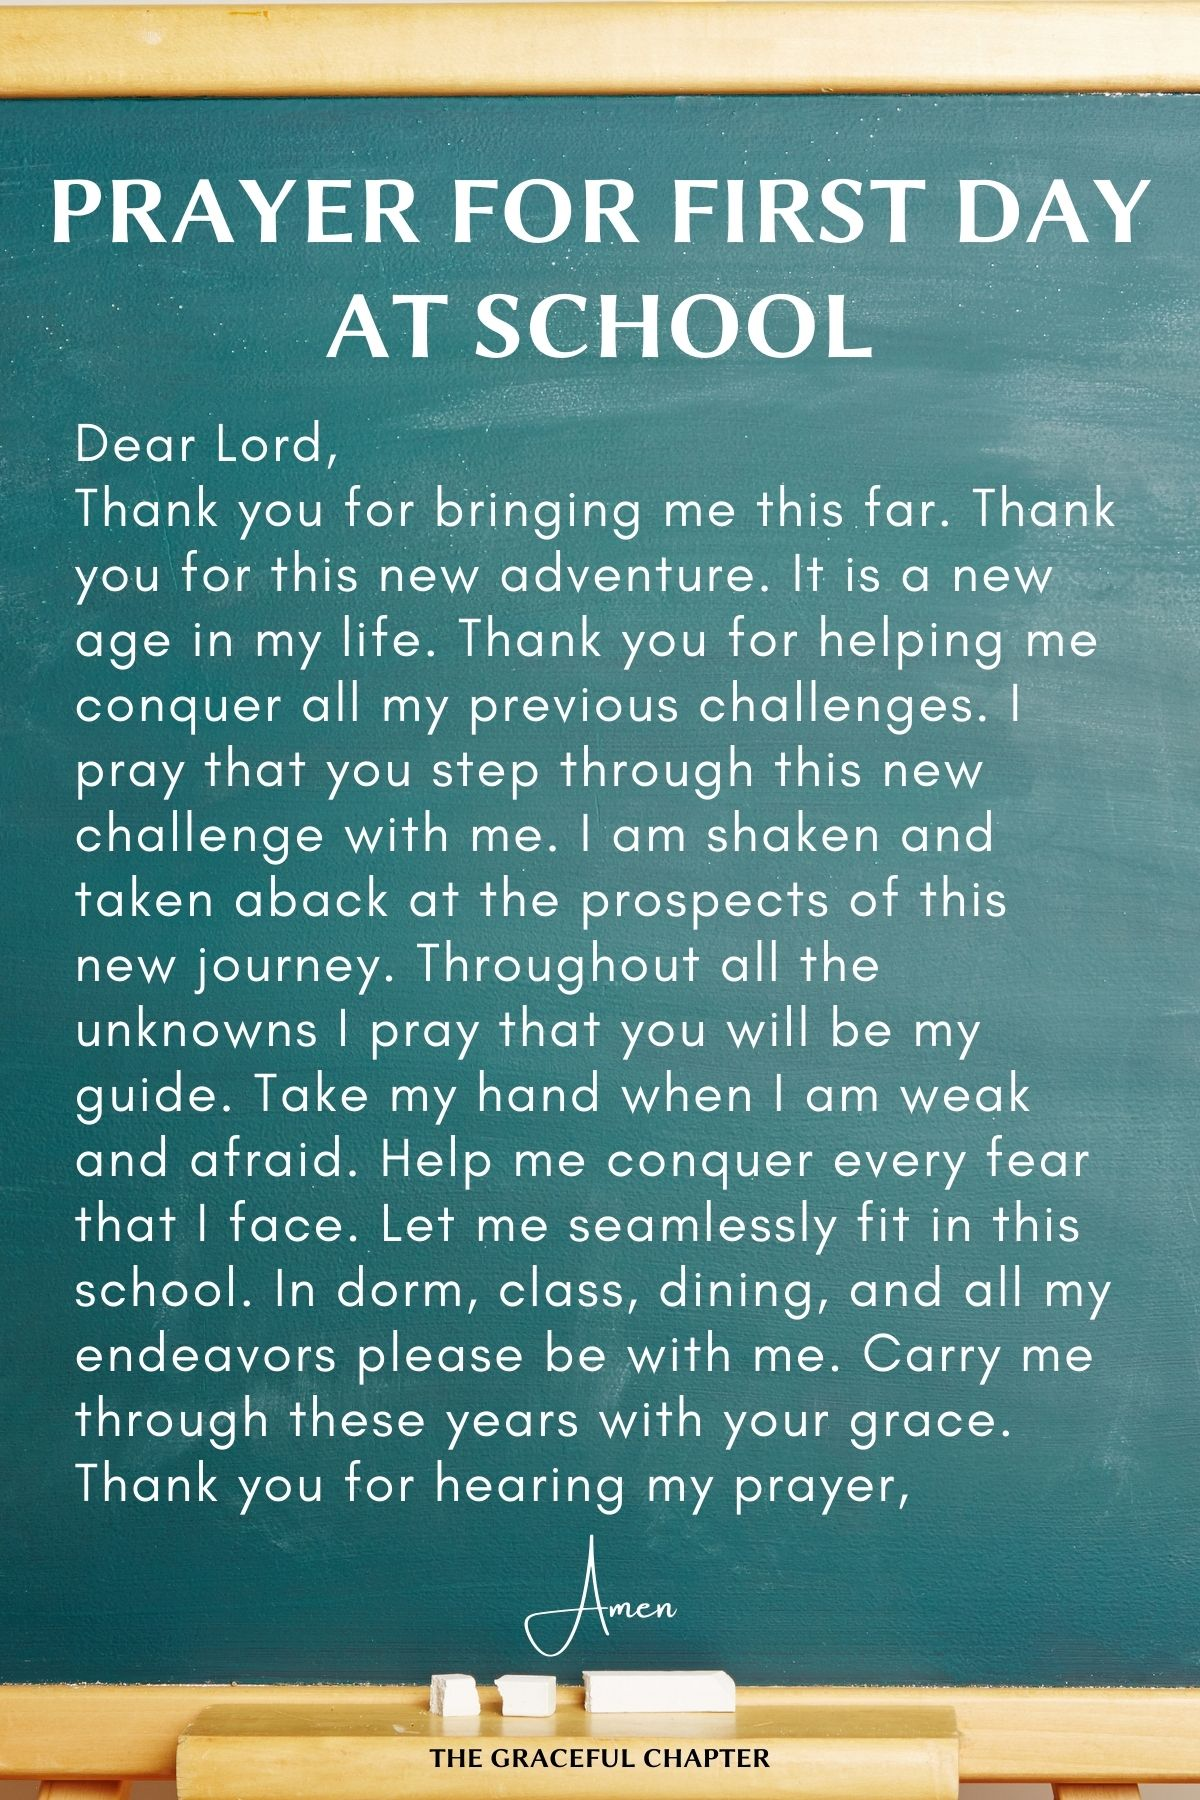 Prayer for first day at school